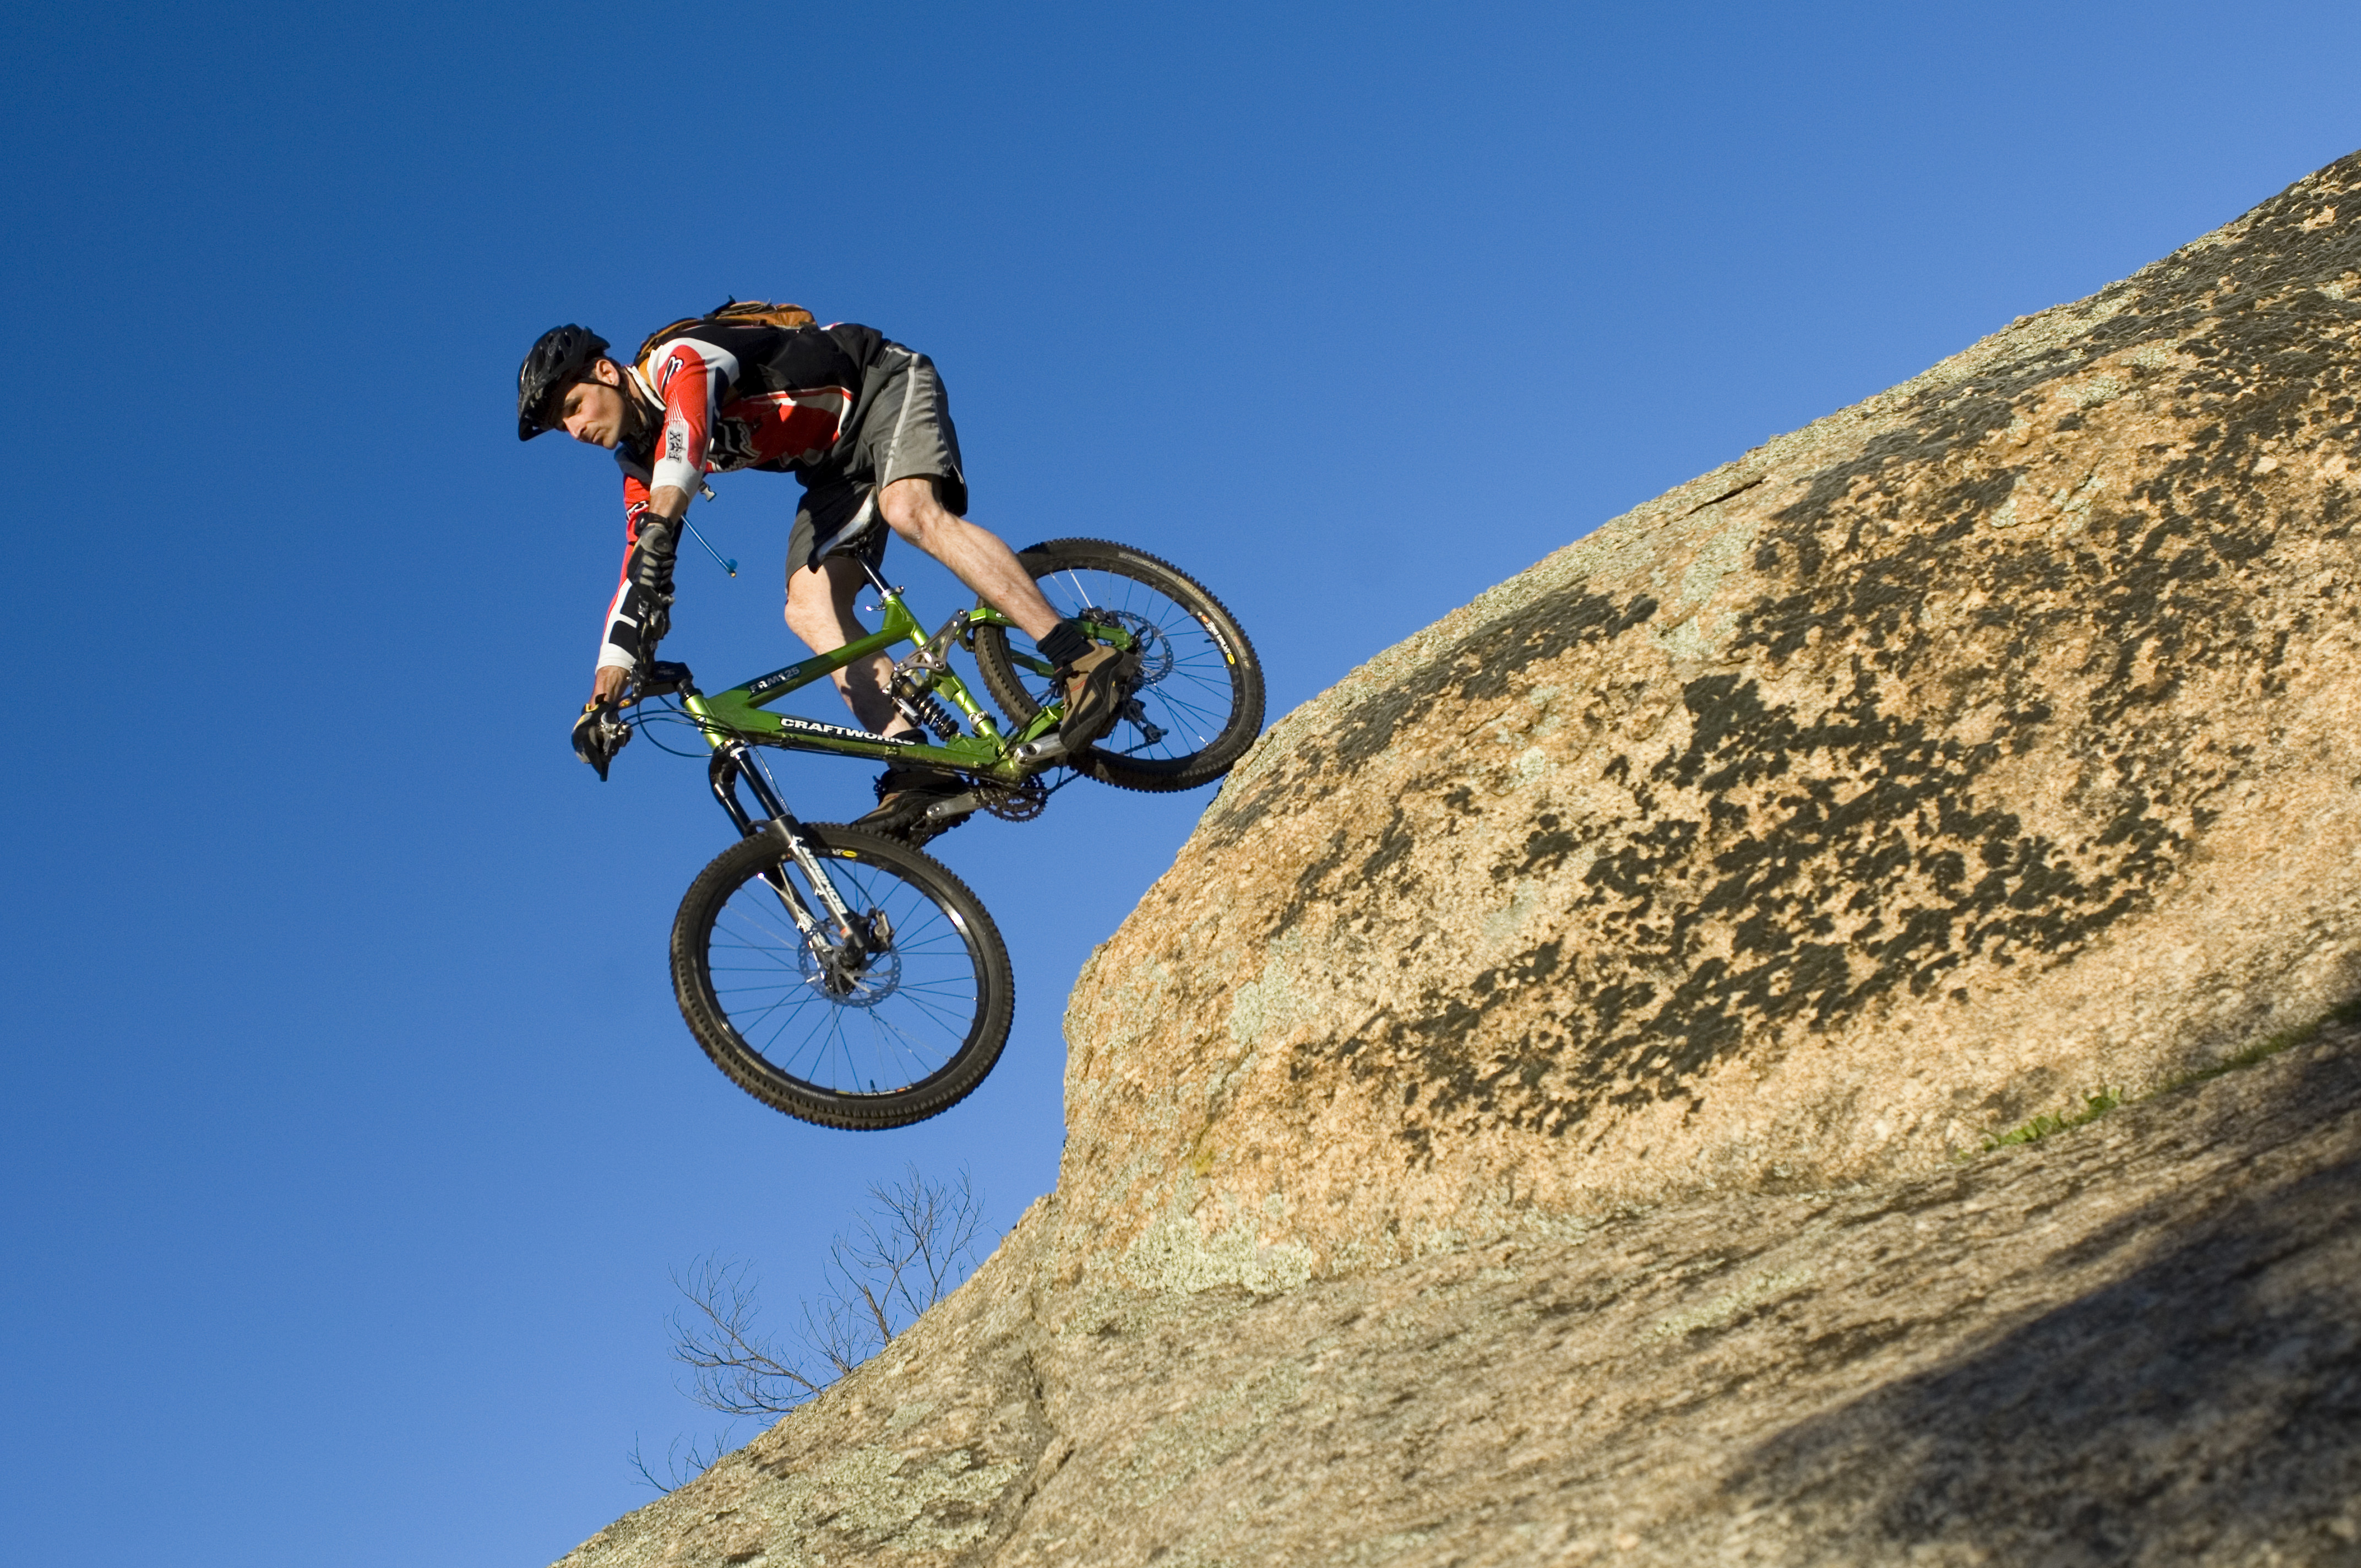 In this image a man rides a bike over a large rock.